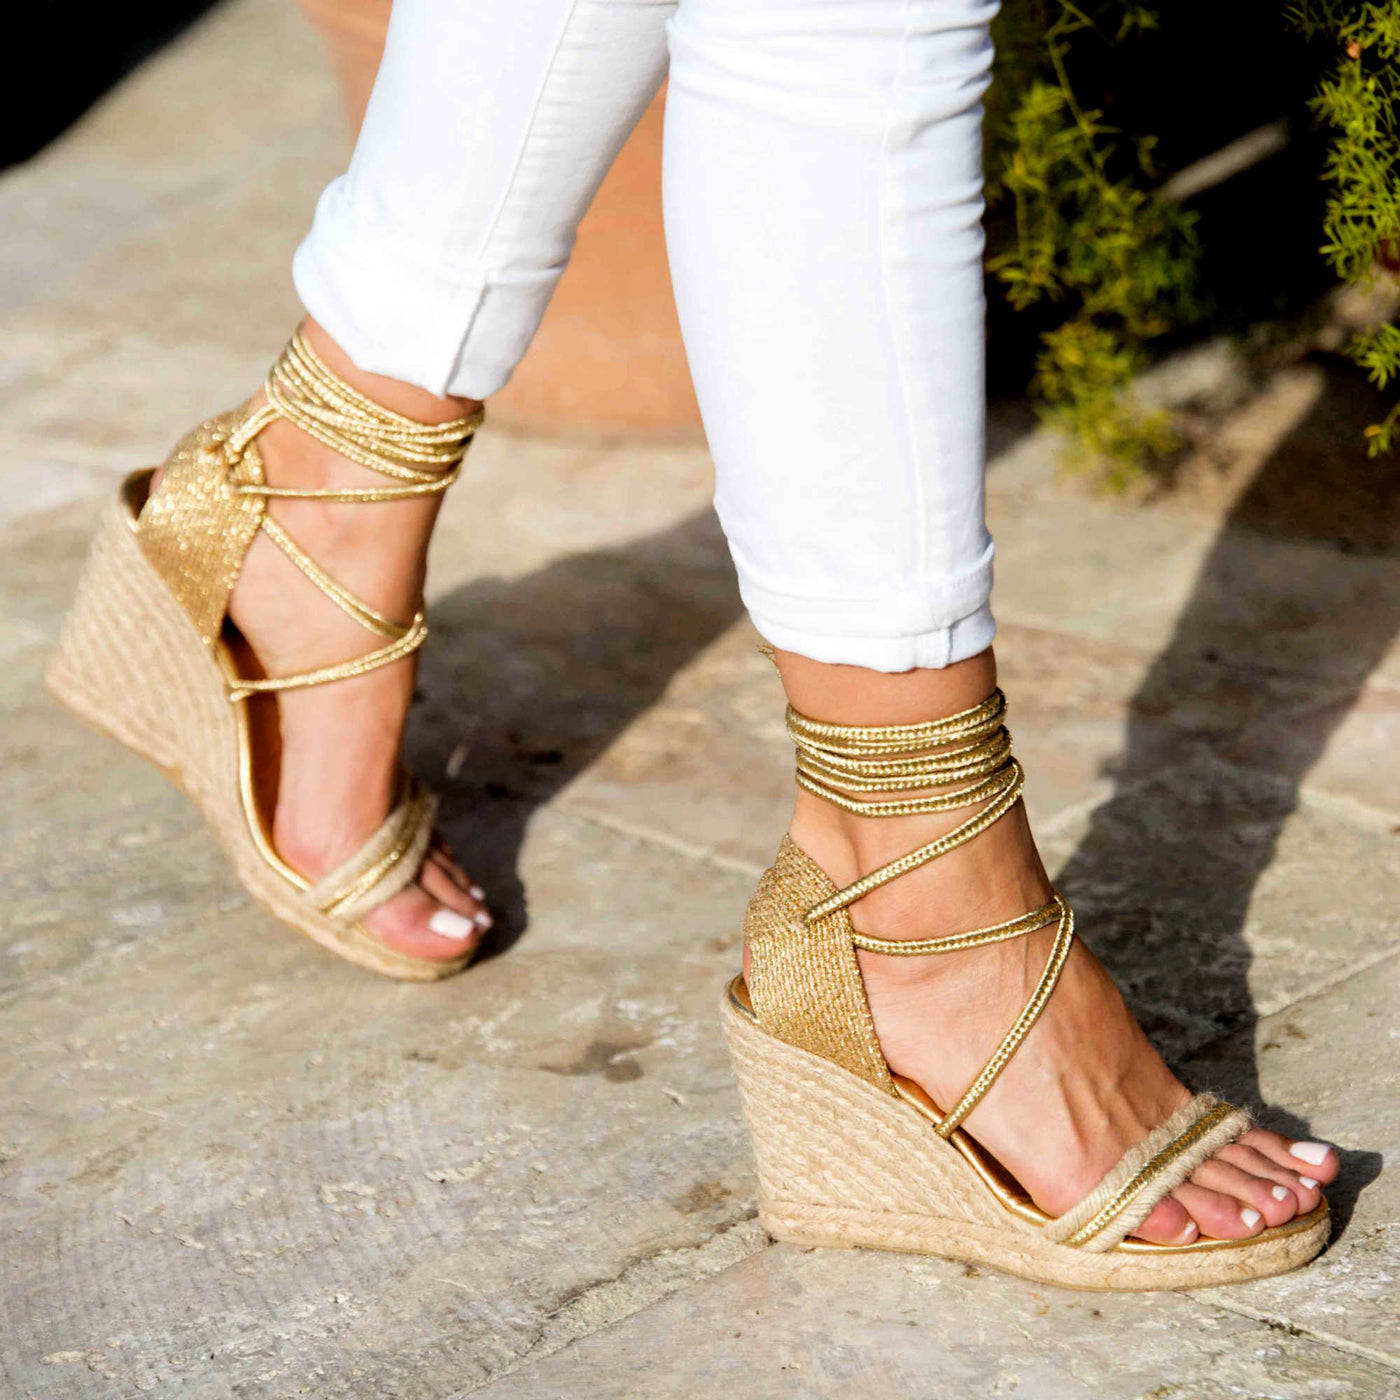 eb044cbe384dbd espadrille shoes. Boho twist to the classics. ESPADRILLE WEDGES